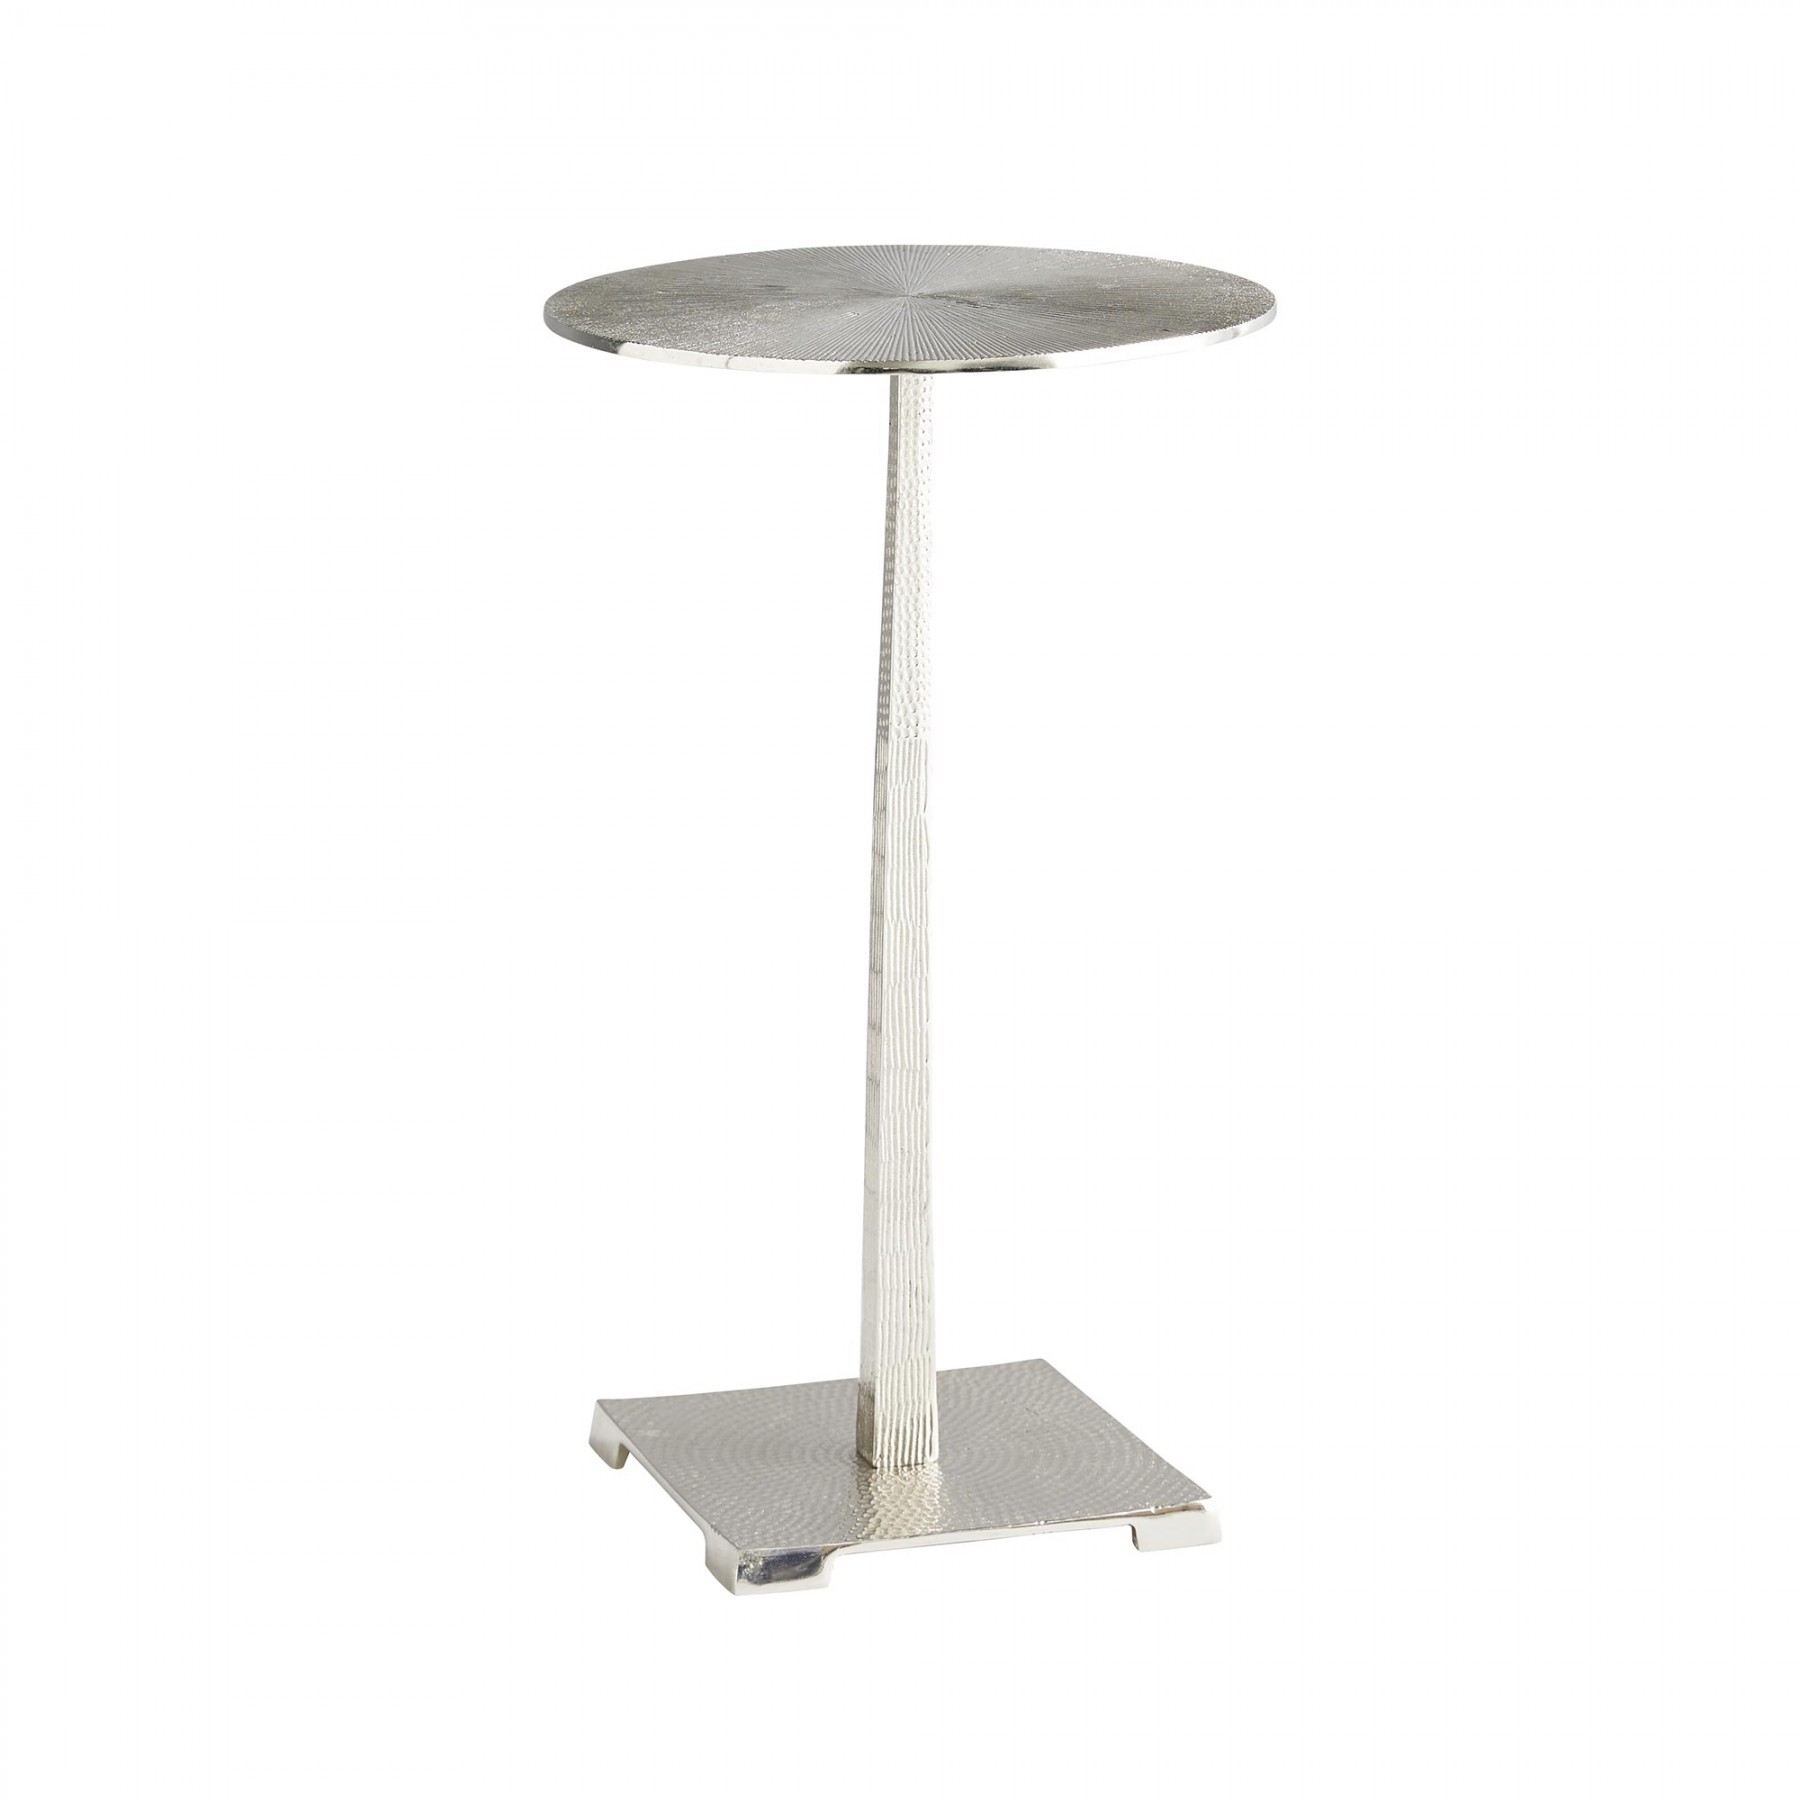 otelia accent table umbrella argos nest tables round glass and gold coffee metal tray everyday tablecloths high bar thin console unique small rustic studio apartment furniture